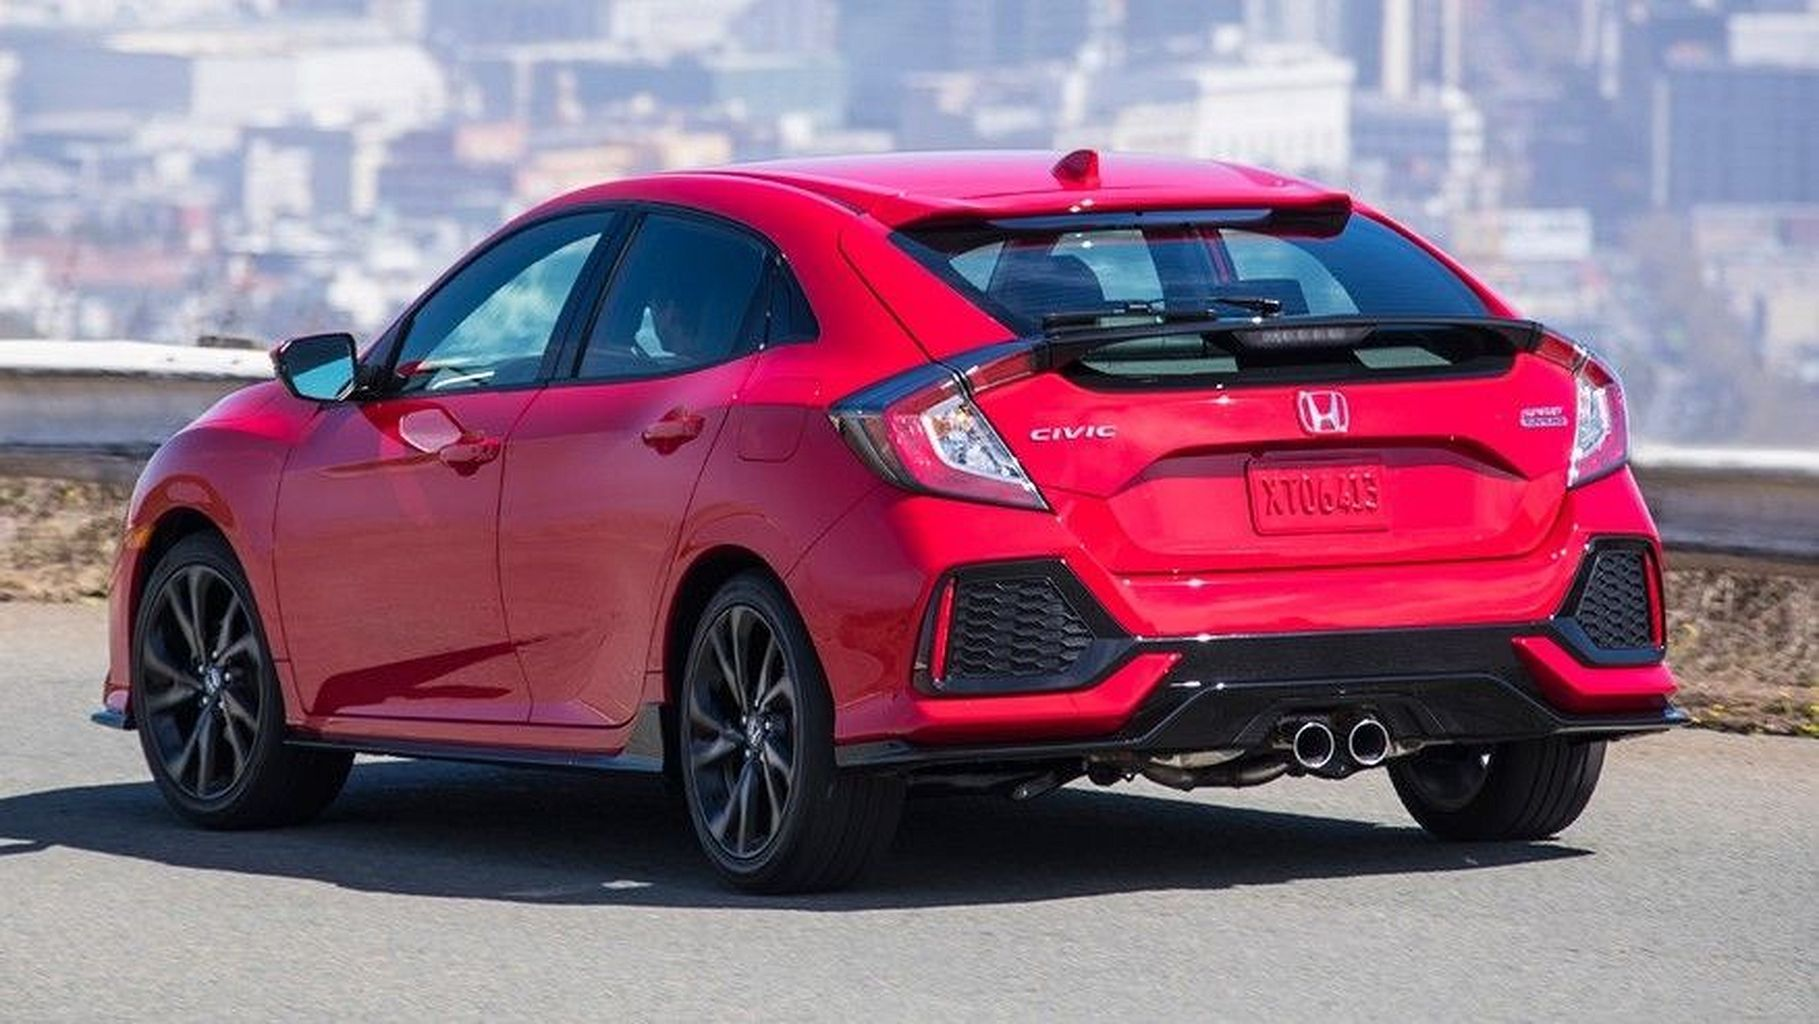 Display Cars Honda Civic Hatchback 2017 Honda civic